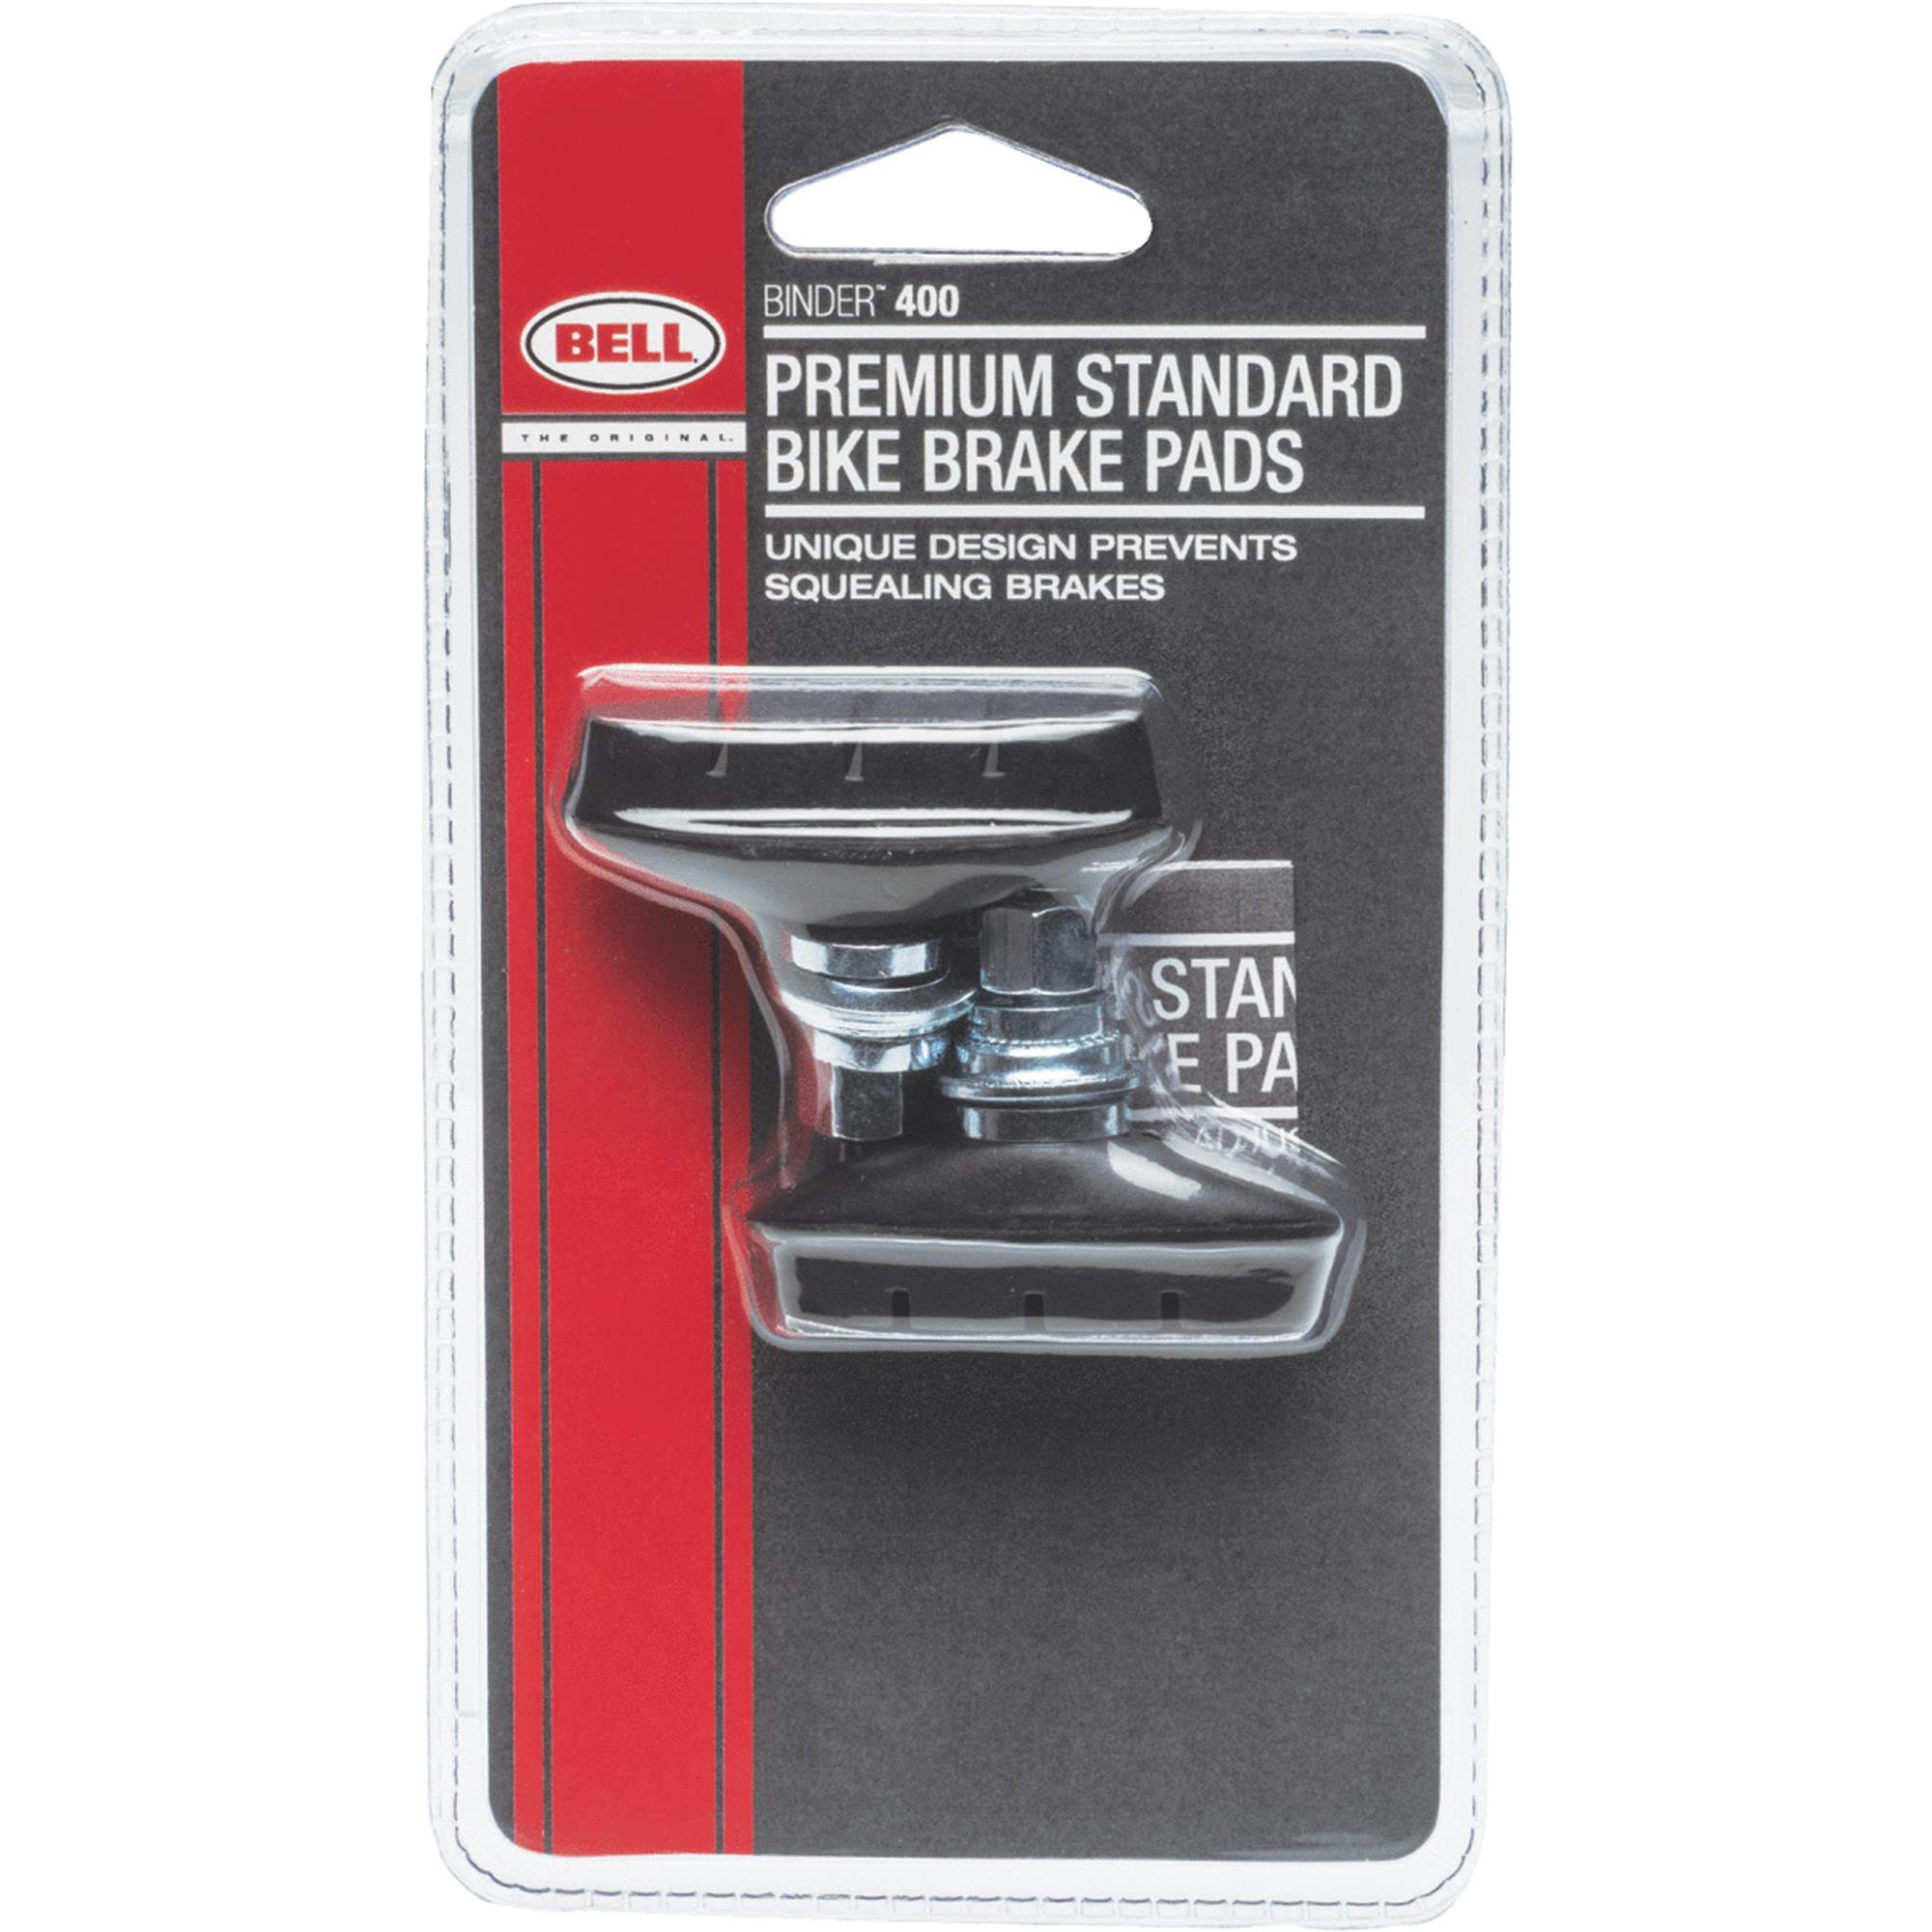 Bell Sports Binder 400 Universal Bicycle Brake Pad Kit (1 pair)